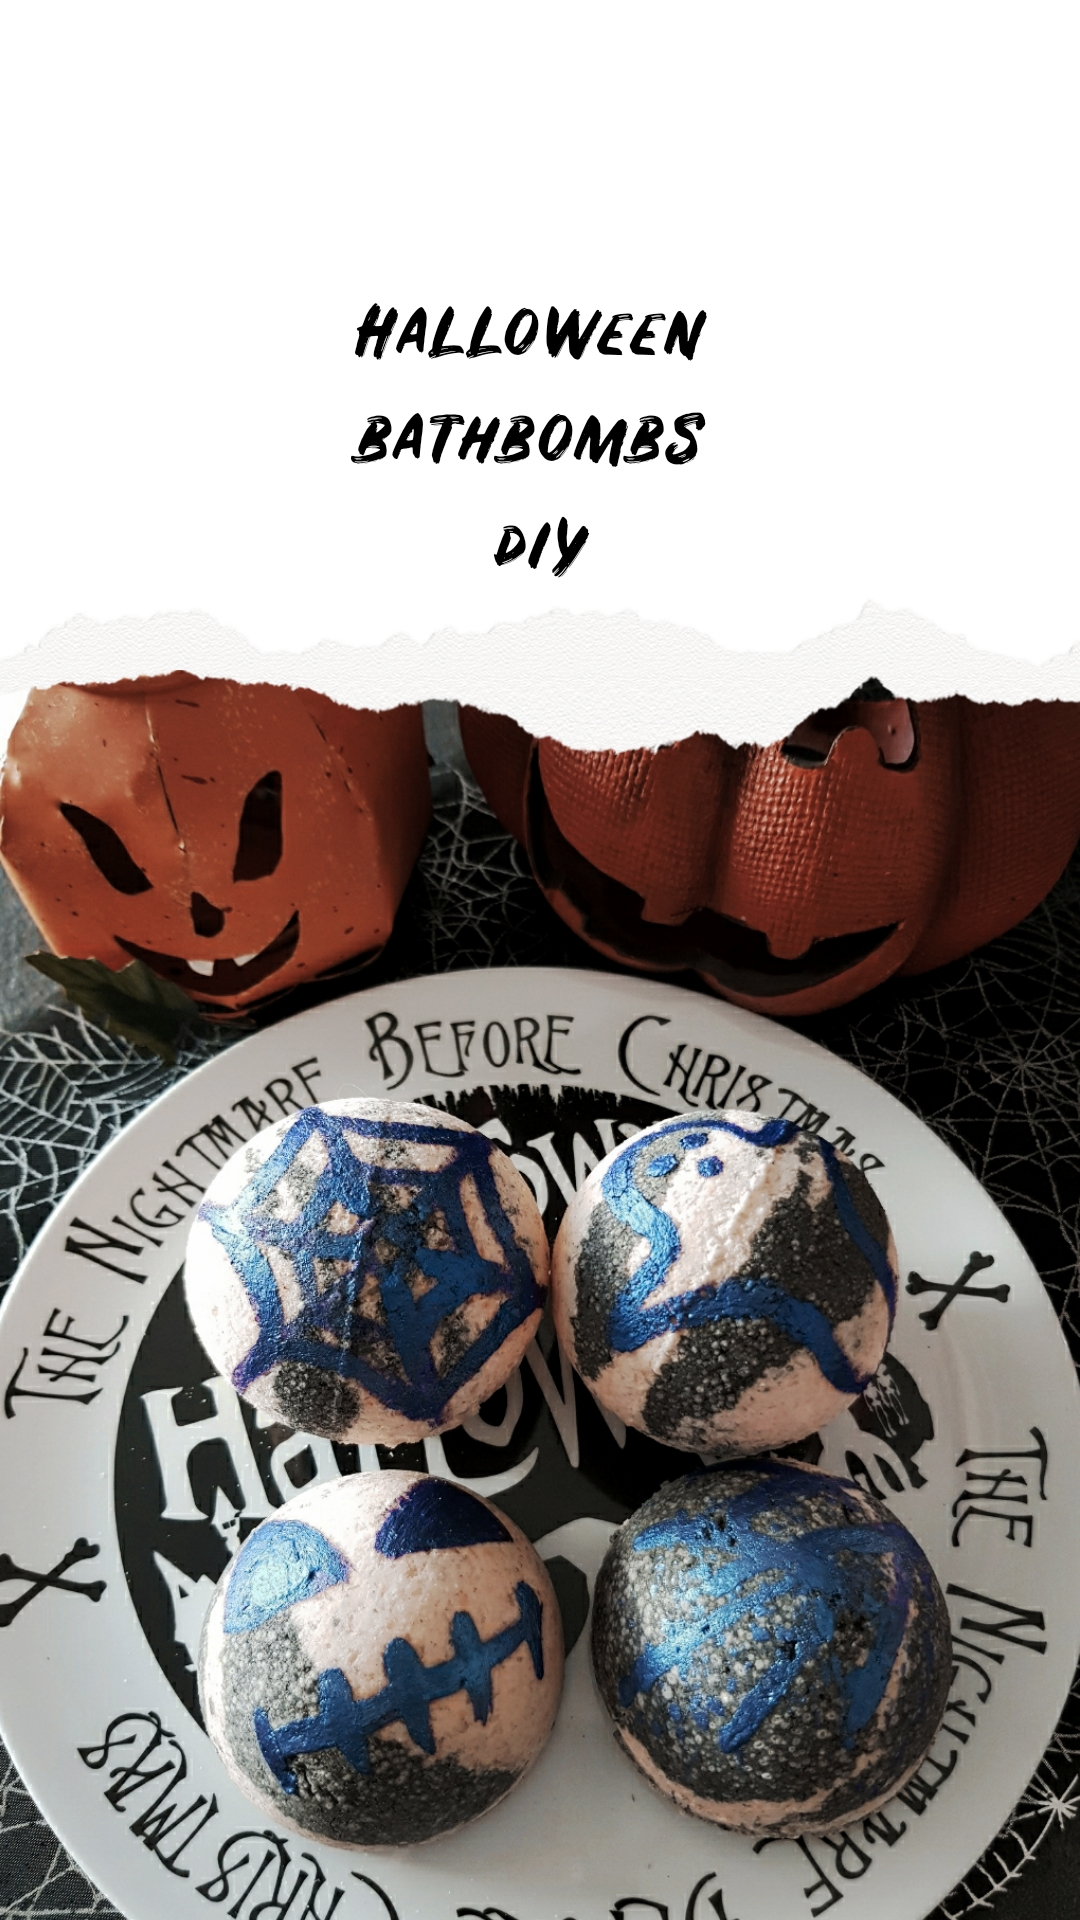 Halloween bathbombs diy